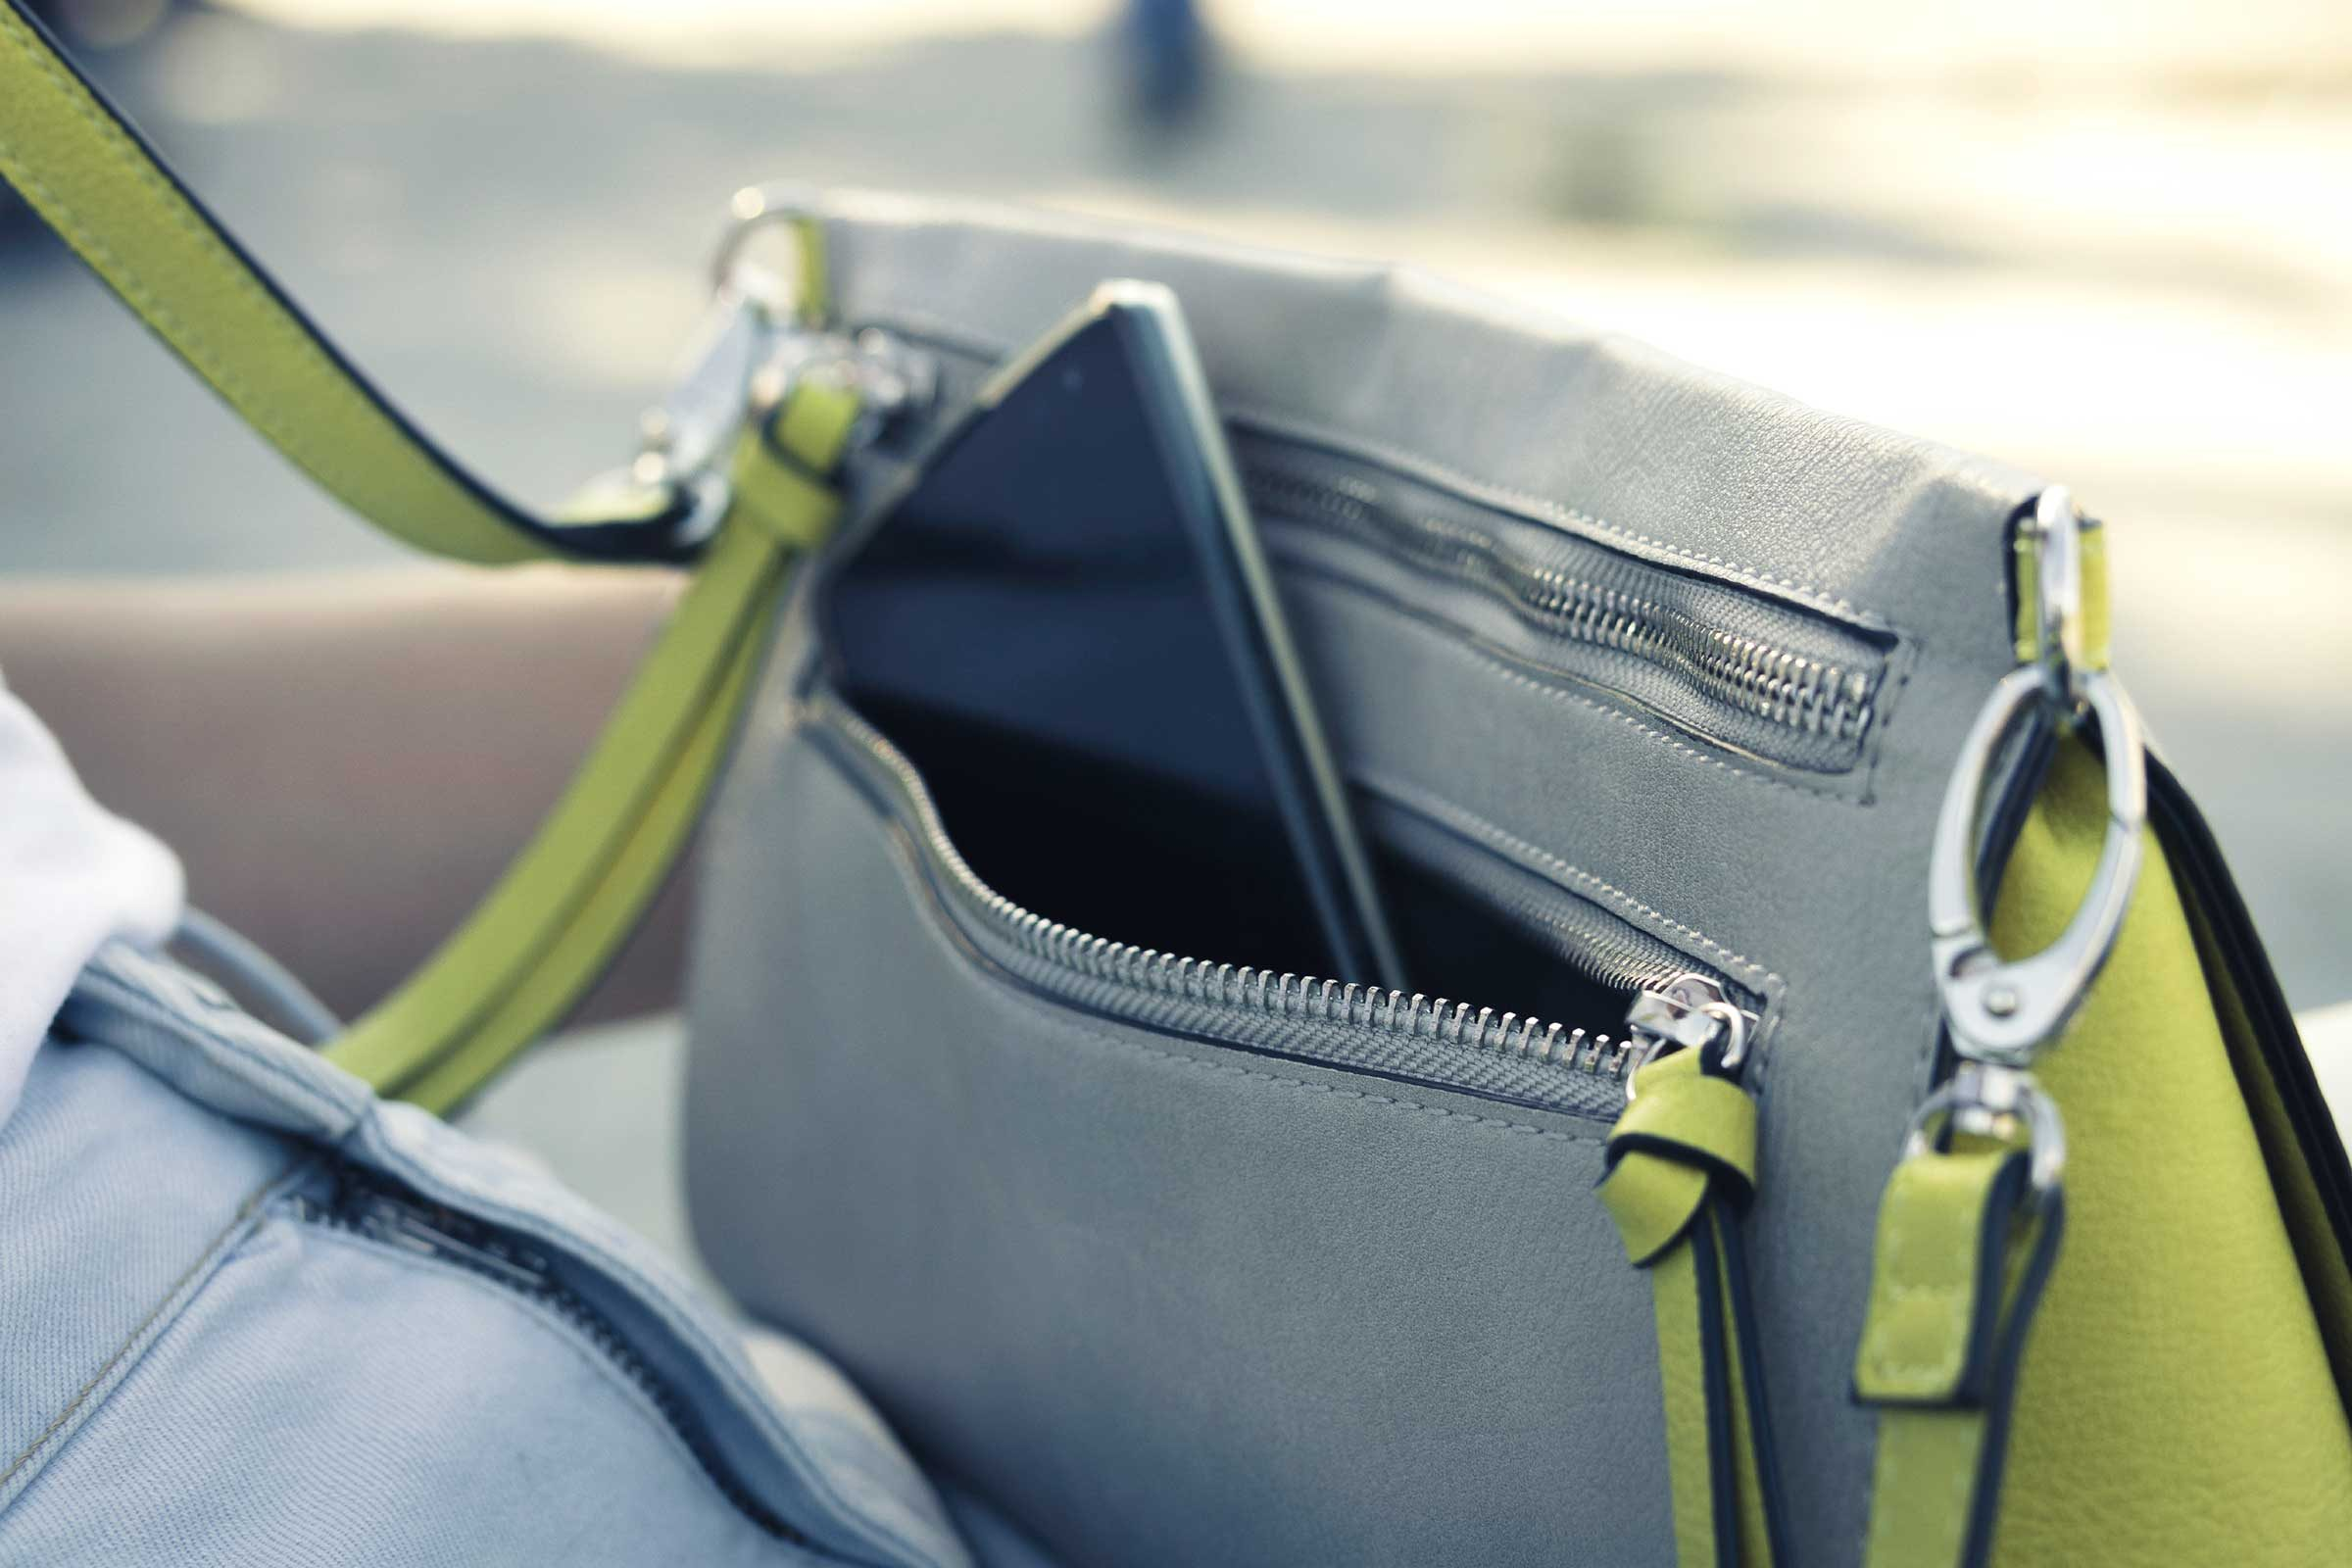 fake chloe - 12 Items You Shouldn't Carry in Your Purse | Reader's Digest